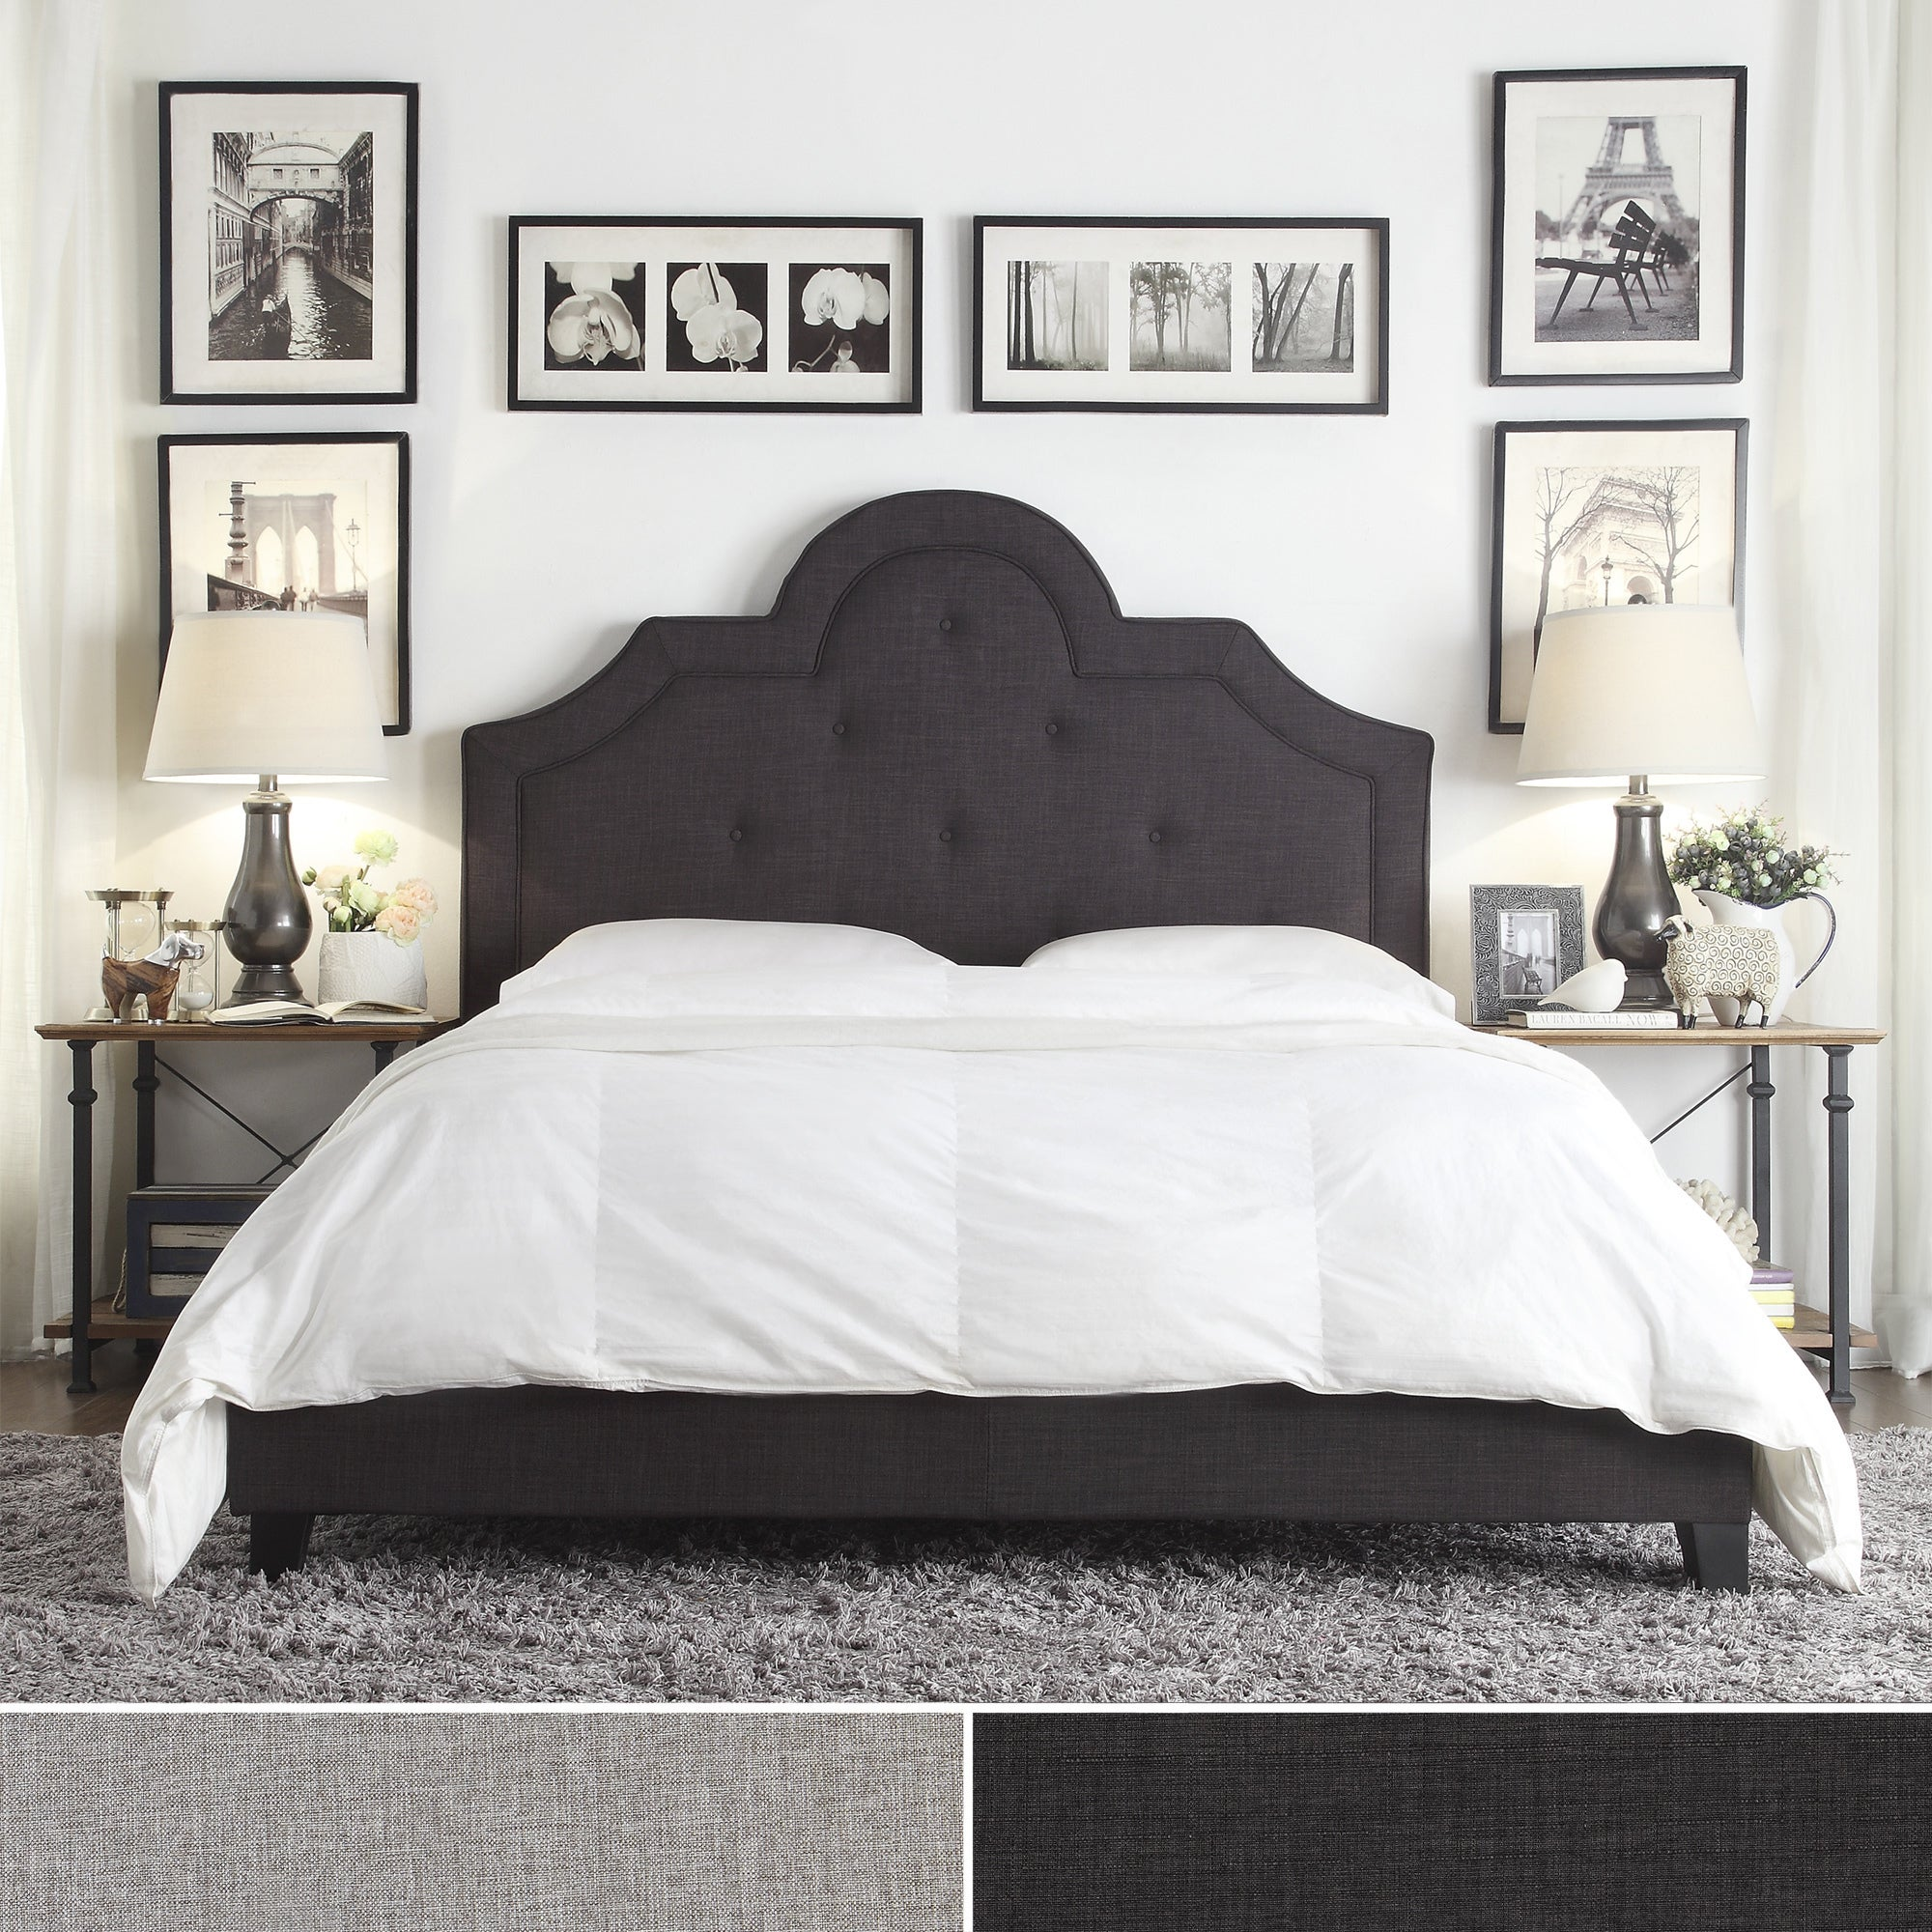 Harper Tufted High-arching Linen Upholstered Queen Bed by iNSPIRE Q Bold -  Free Shipping Today - Overstock.com - 17150373